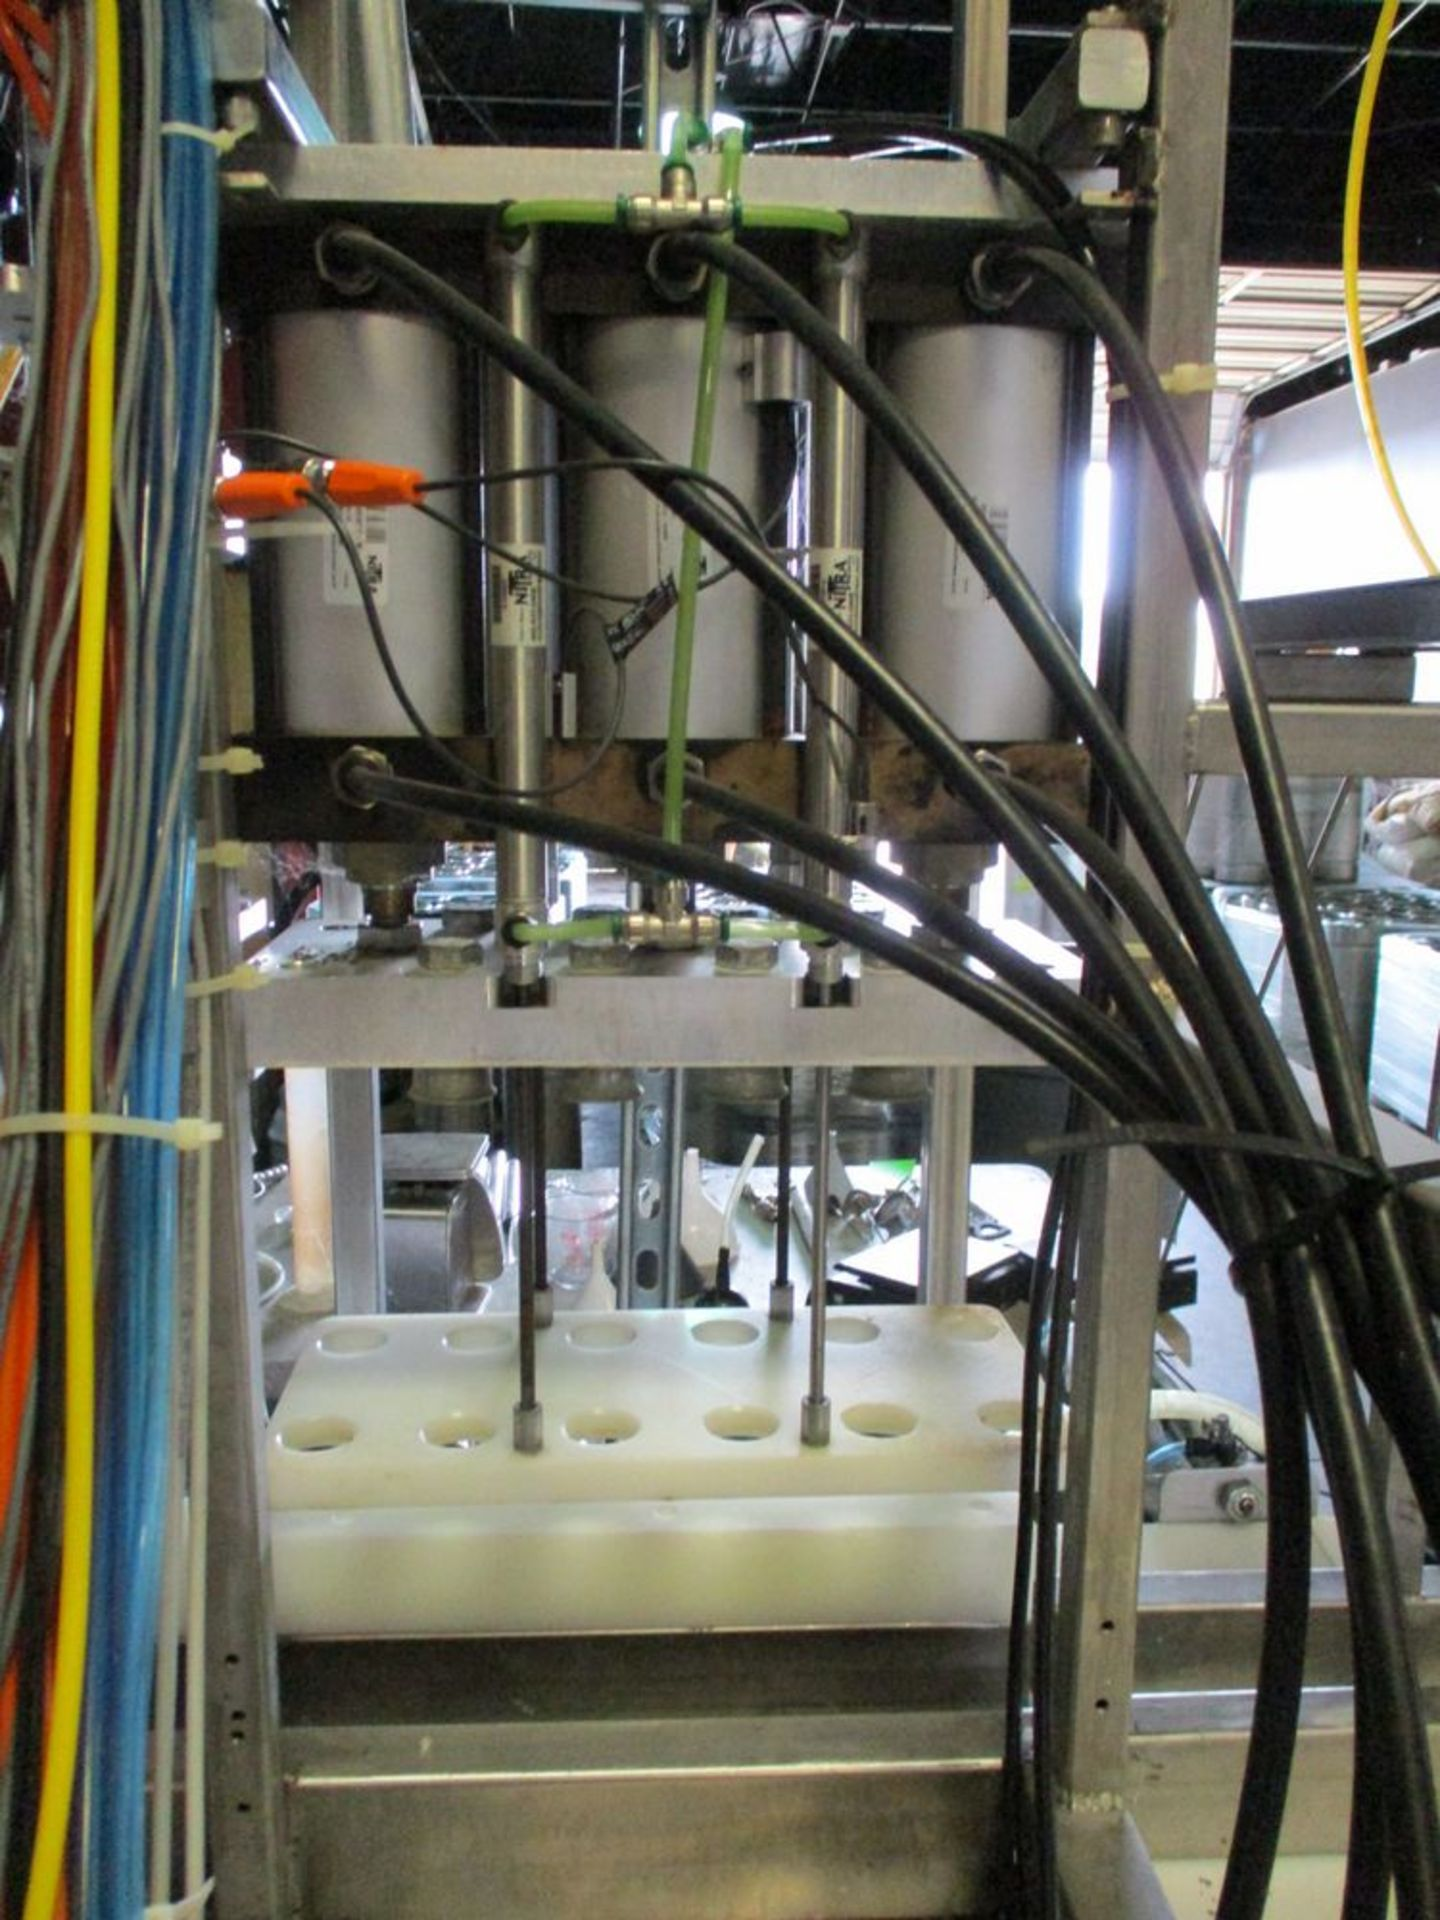 Semi-automatic 6 station bottle filler with spare parts, 112 in x 74 in ***Auctioneer Note*** -- $ - Image 5 of 14